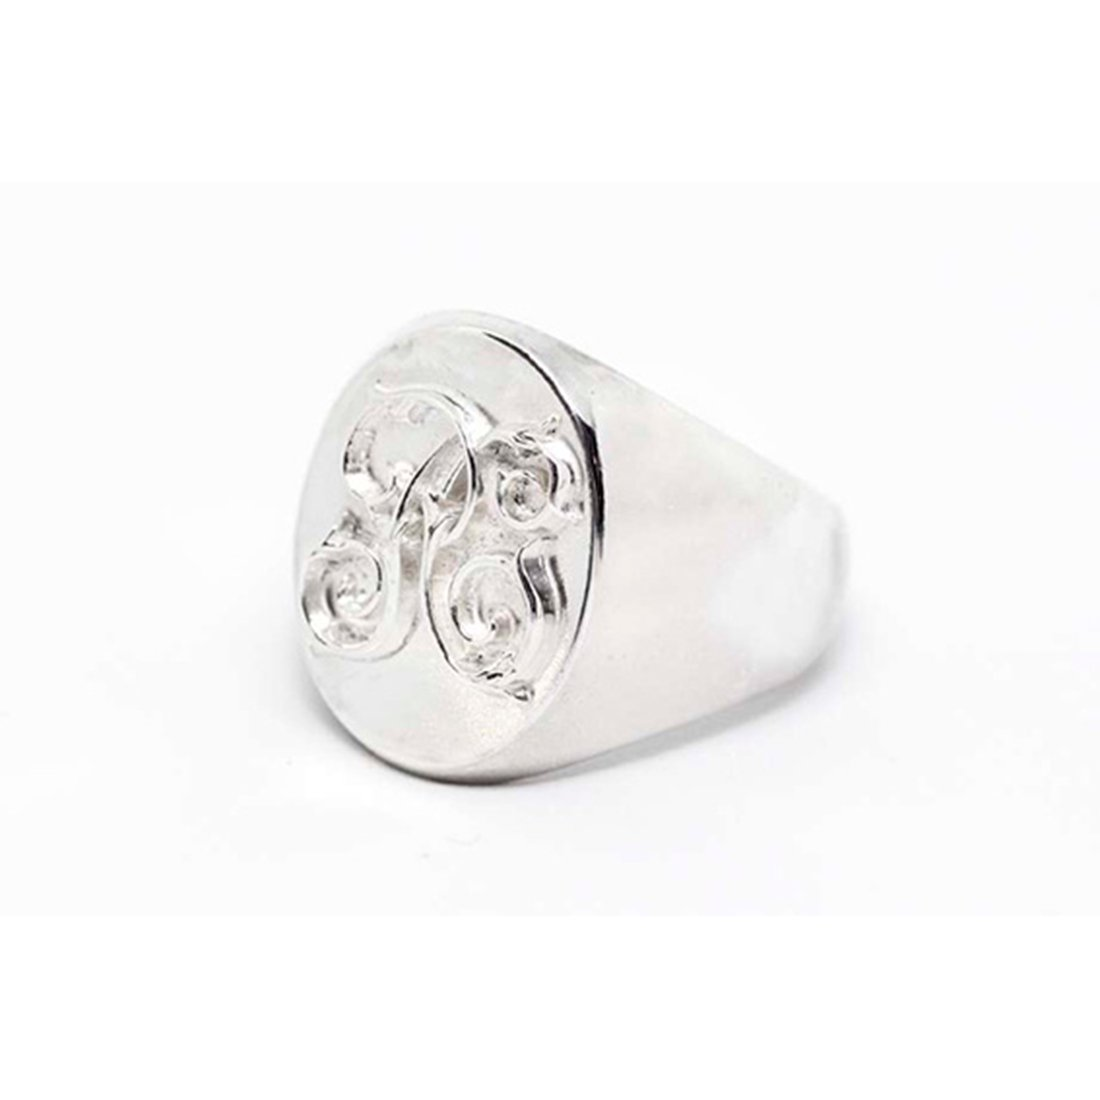 PEANUTS & Co. #Signet Ring -Small